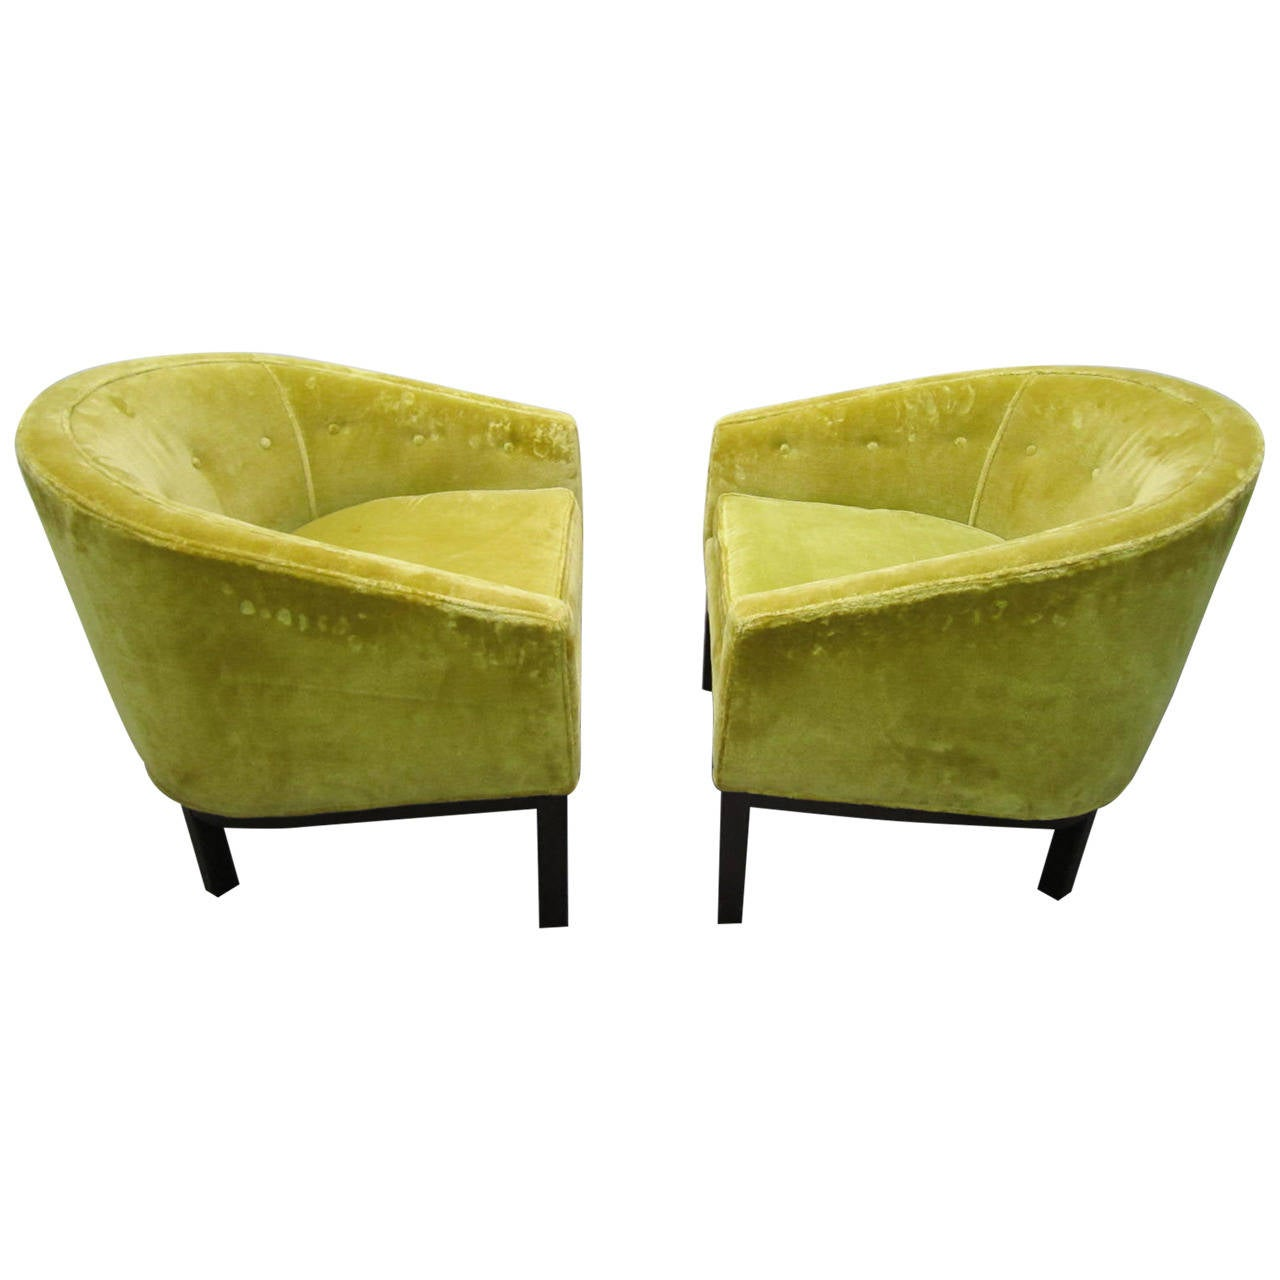 Fabulous Pair Harvey Probber Barrel Back Lounge Chairs Mid Century Modern 1